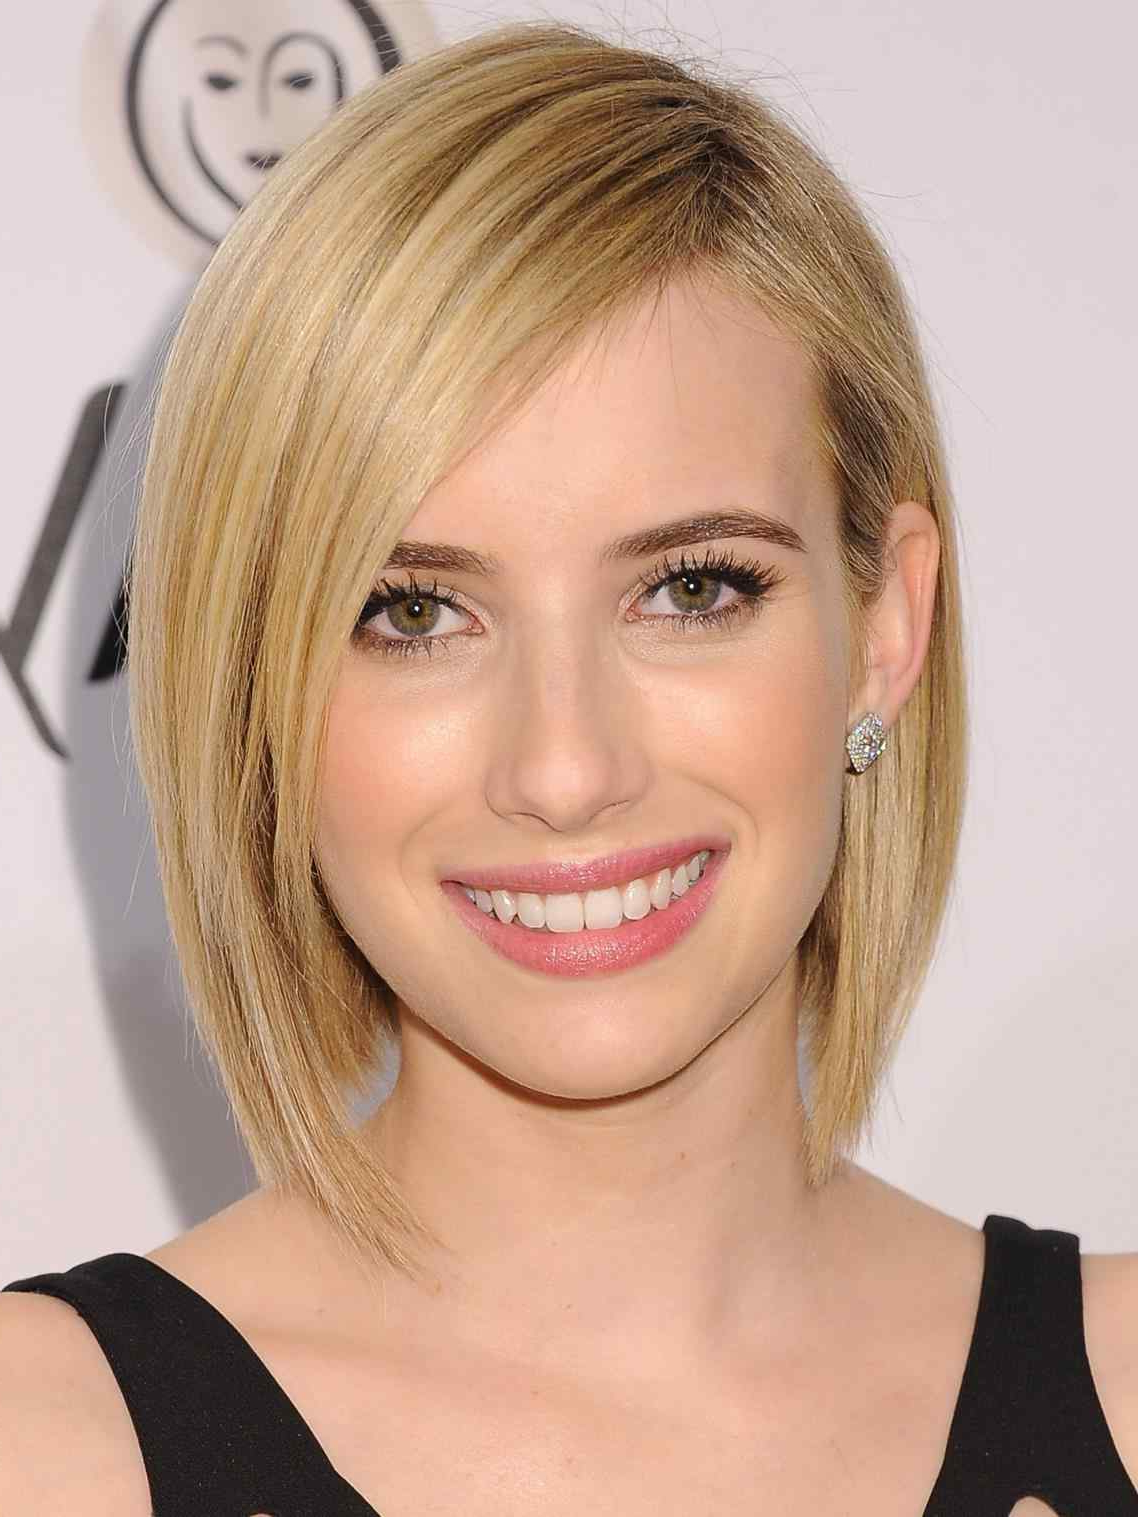 Hair Cuts New Modern Hairstyles New Cool Short Haircuts For – Lamidieu Pertaining To Teenage Girl Short Hairstyles (View 14 of 25)